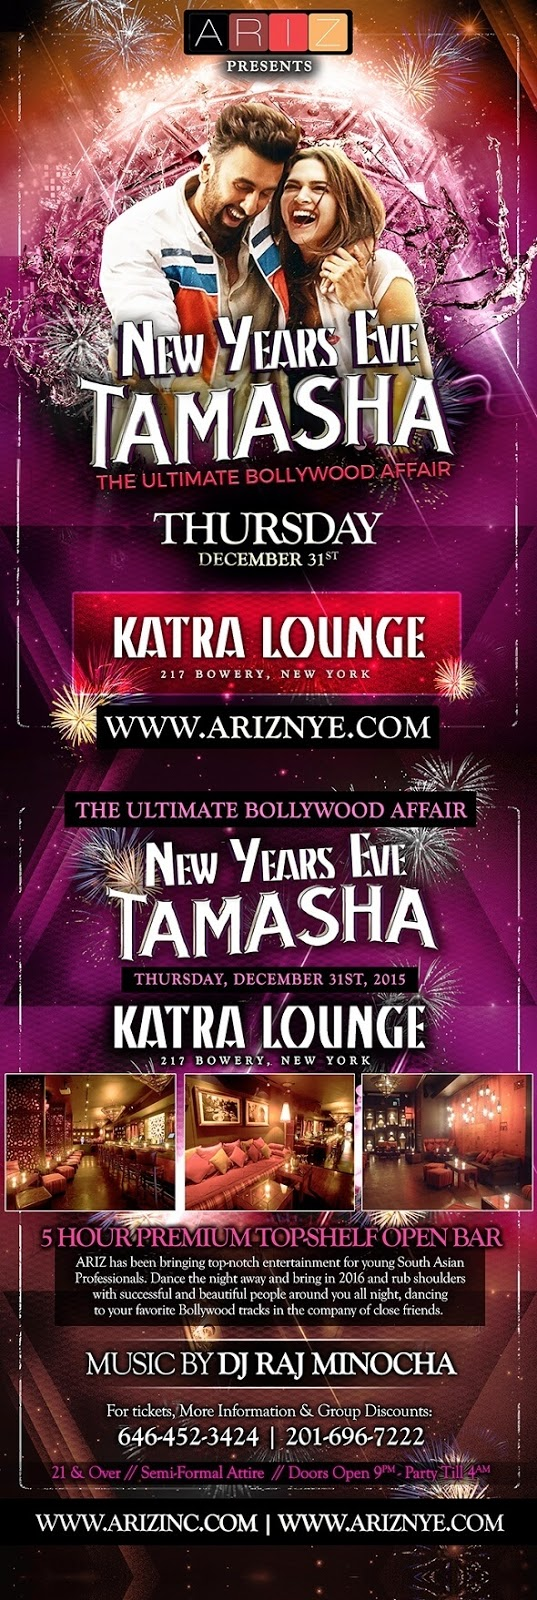 tamasha -new year